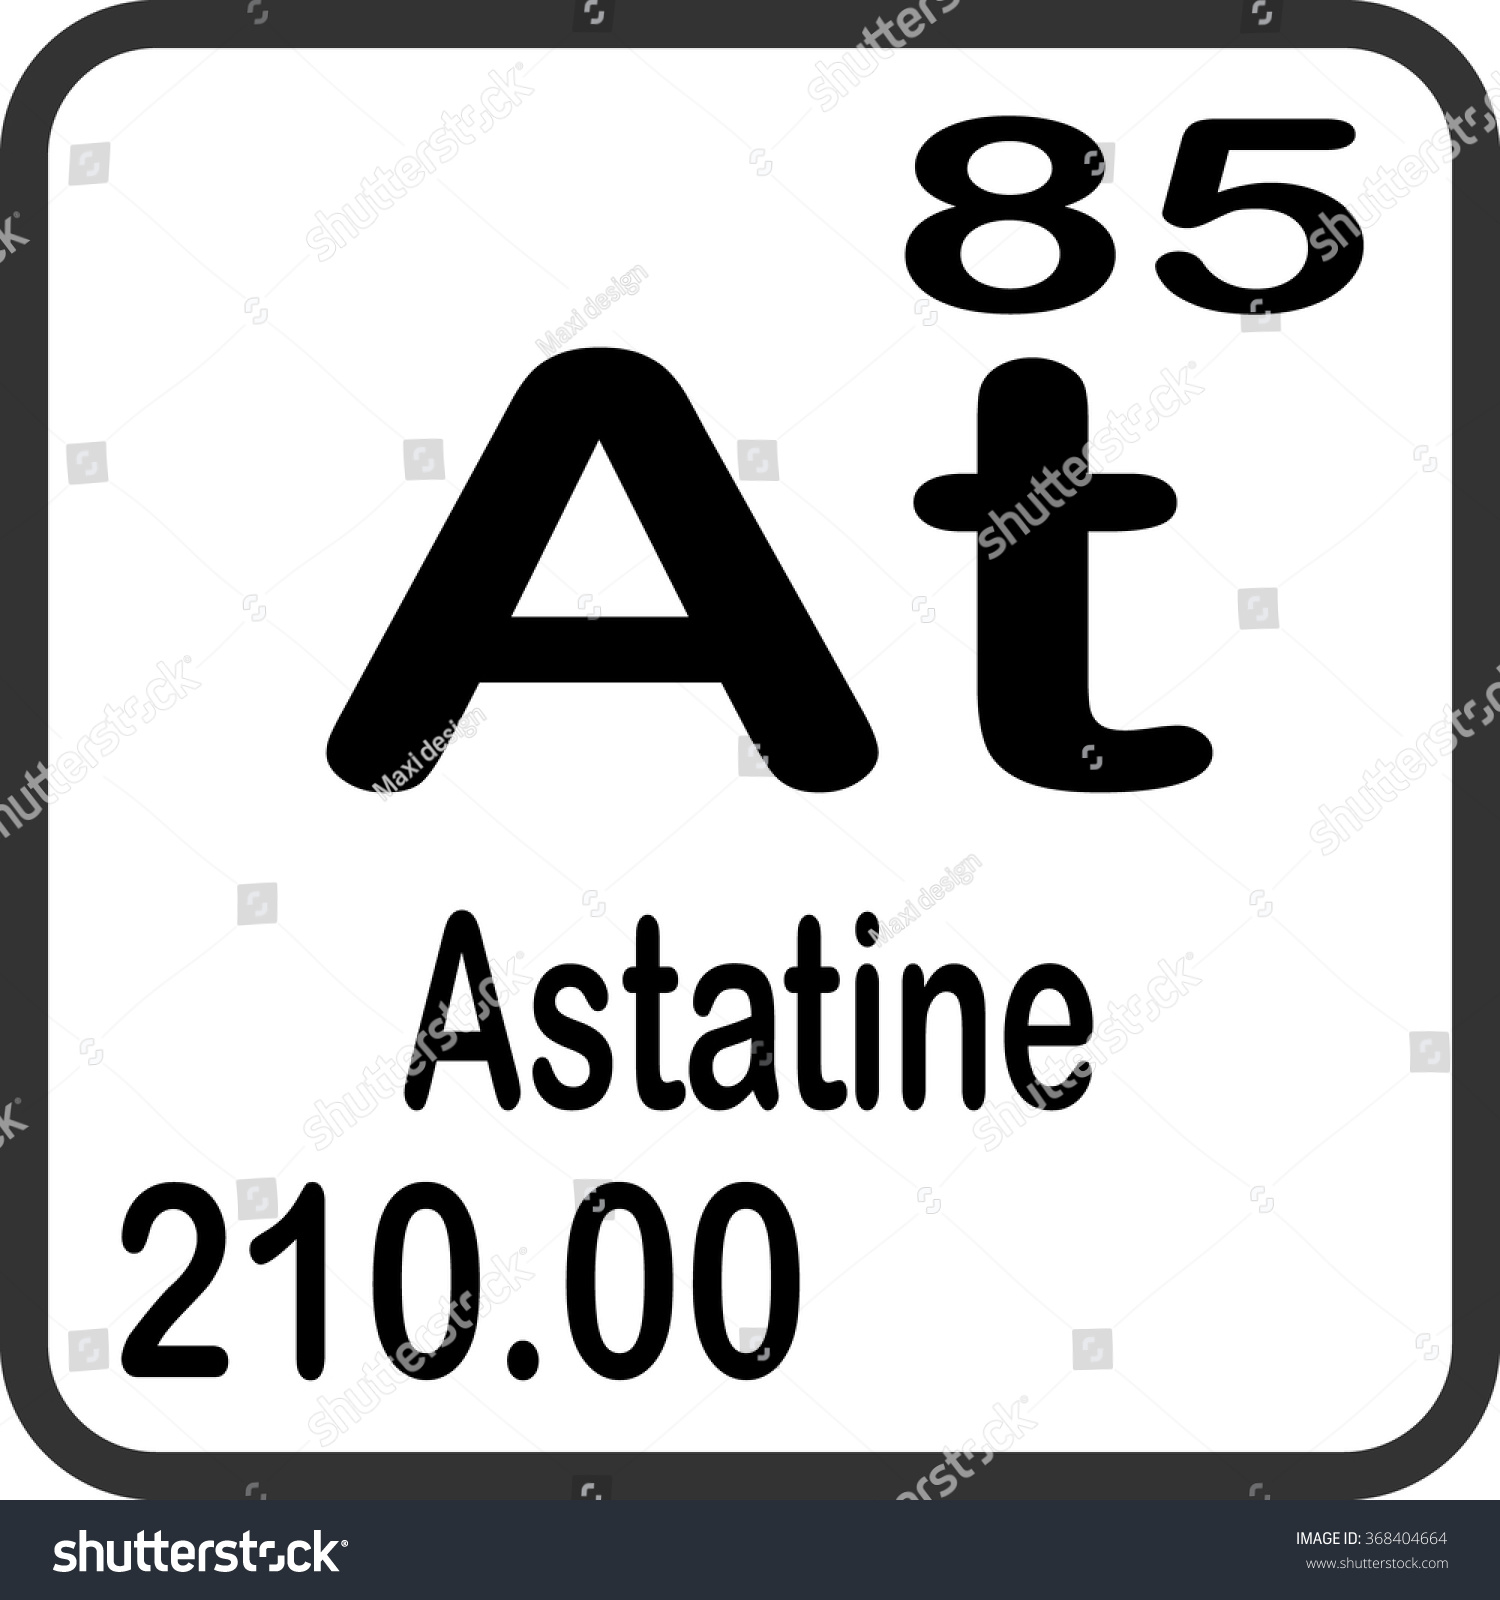 Astatine on the periodic table images periodic table images astatine symbol periodic table aviongoldcorp periodic table elements astatine stock vector 368404664 shutterstock gamestrikefo images gamestrikefo Image collections